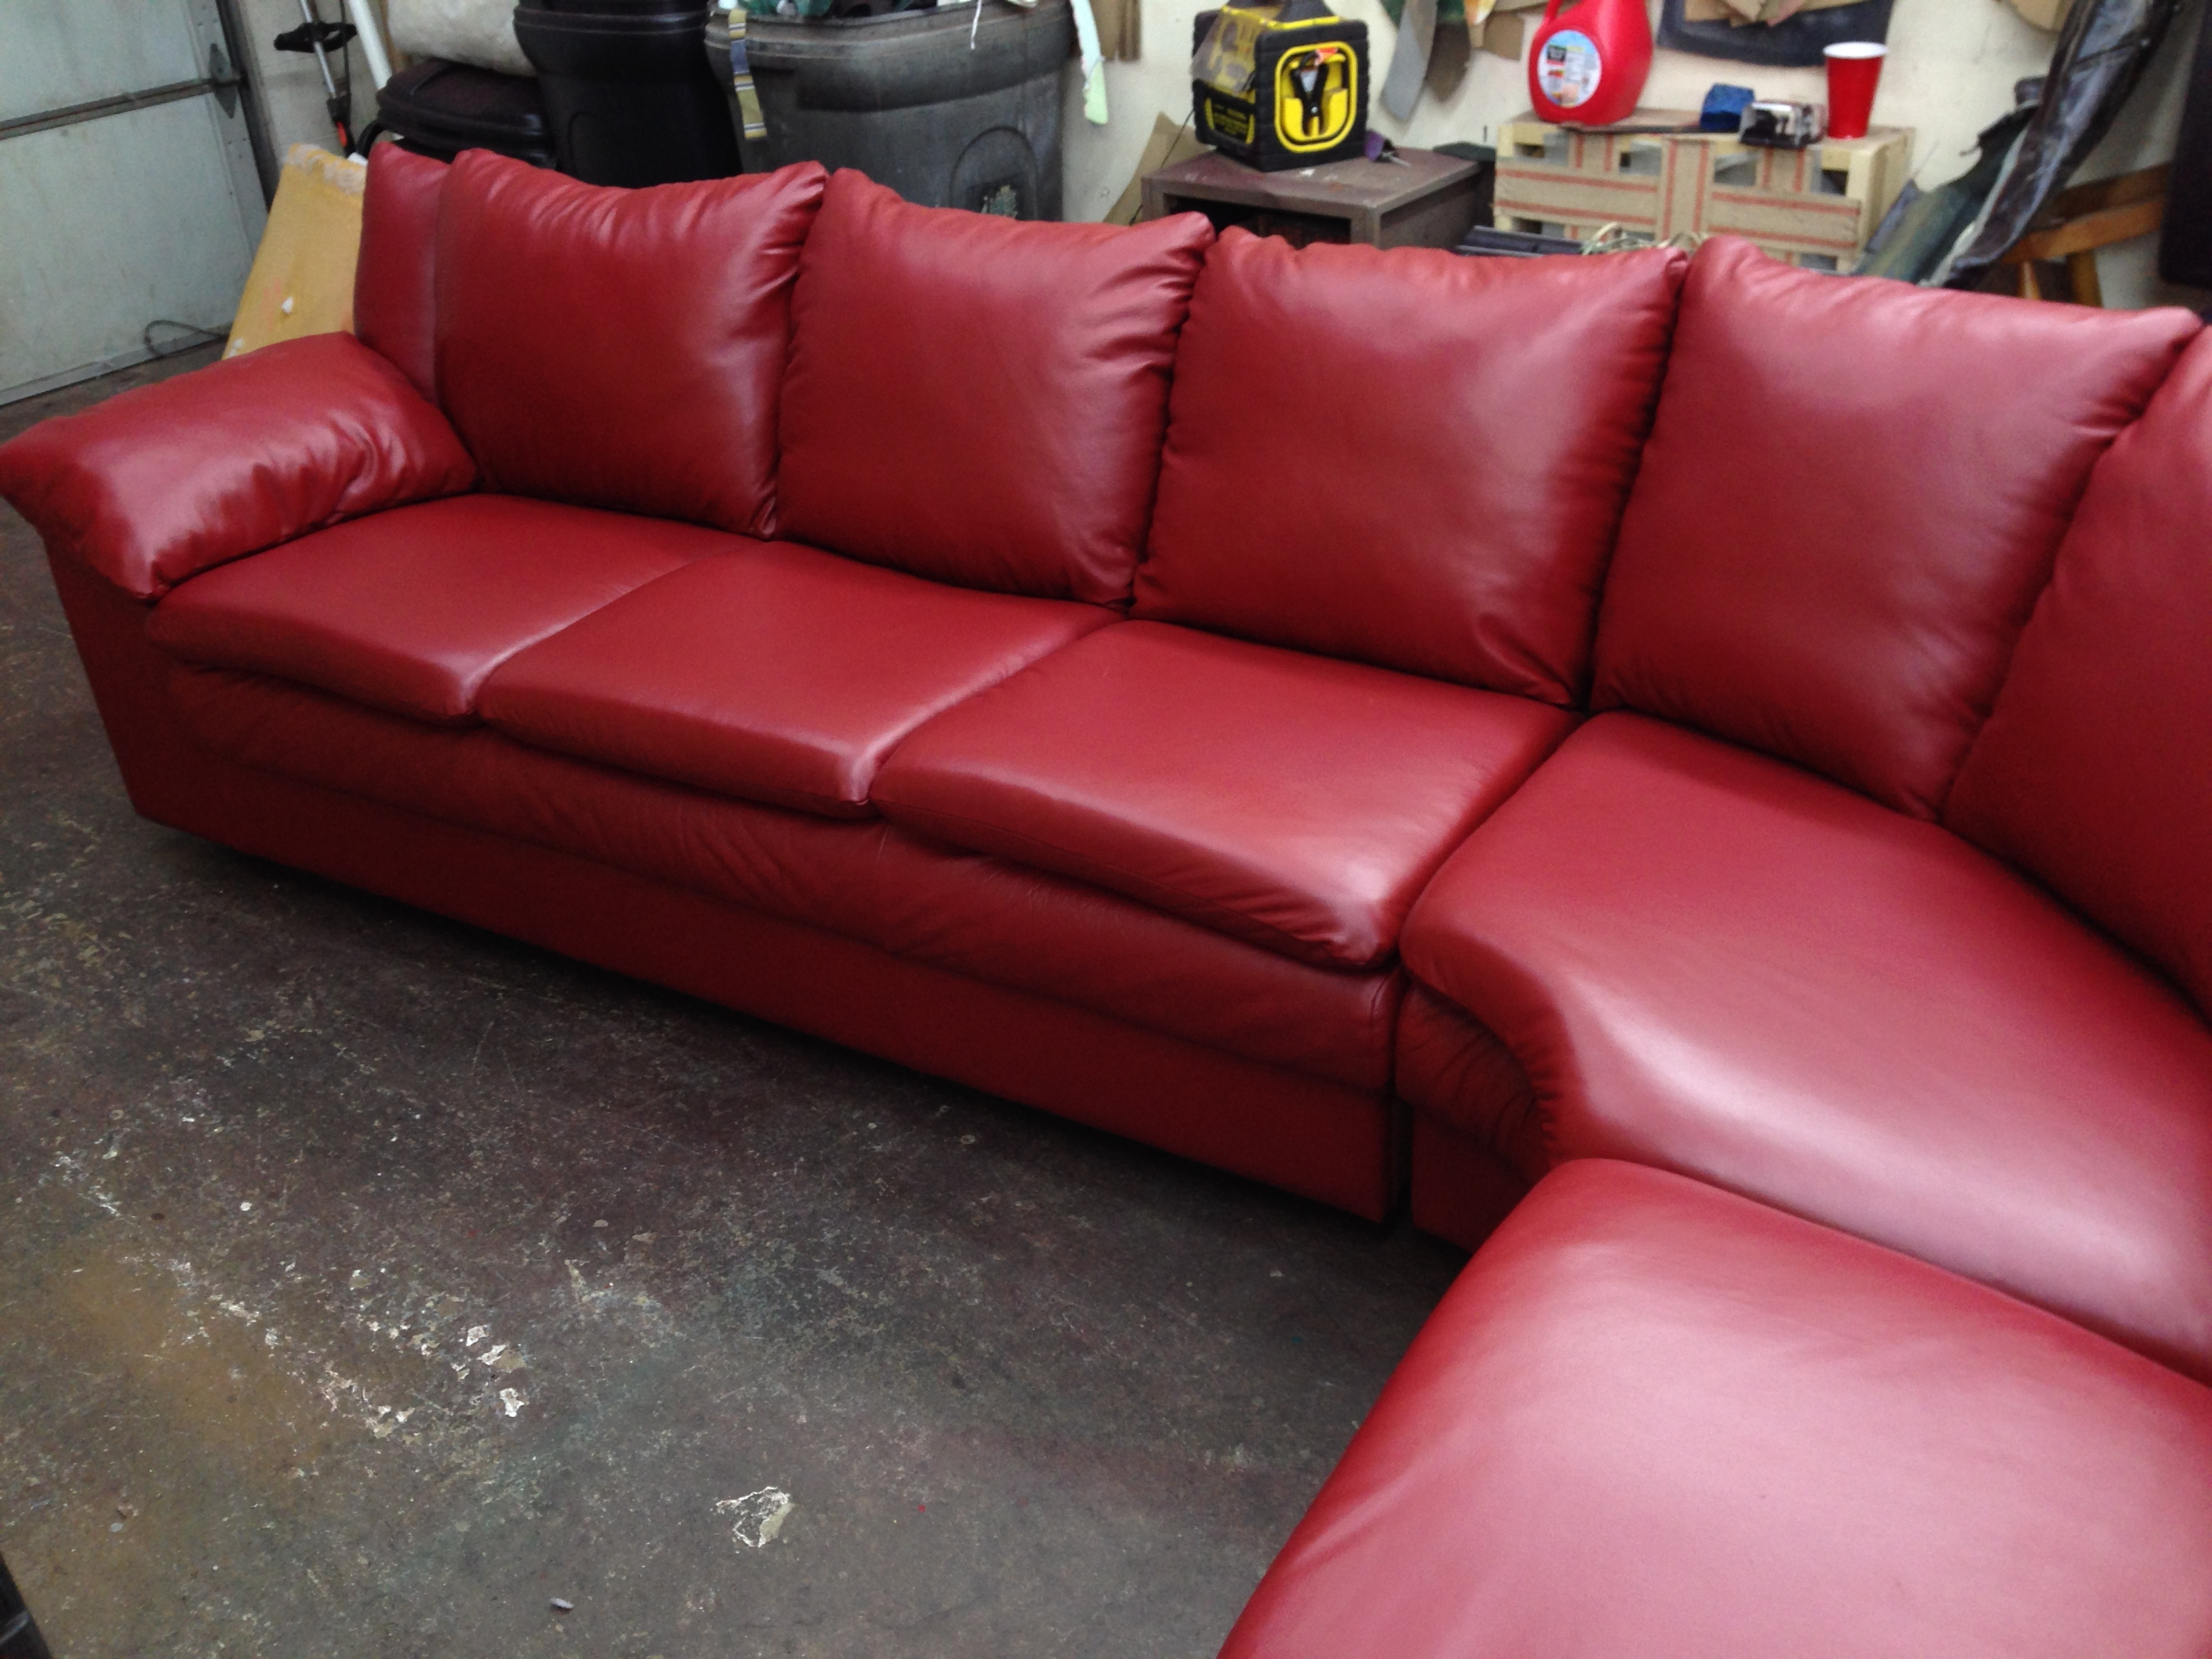 Red sectional after